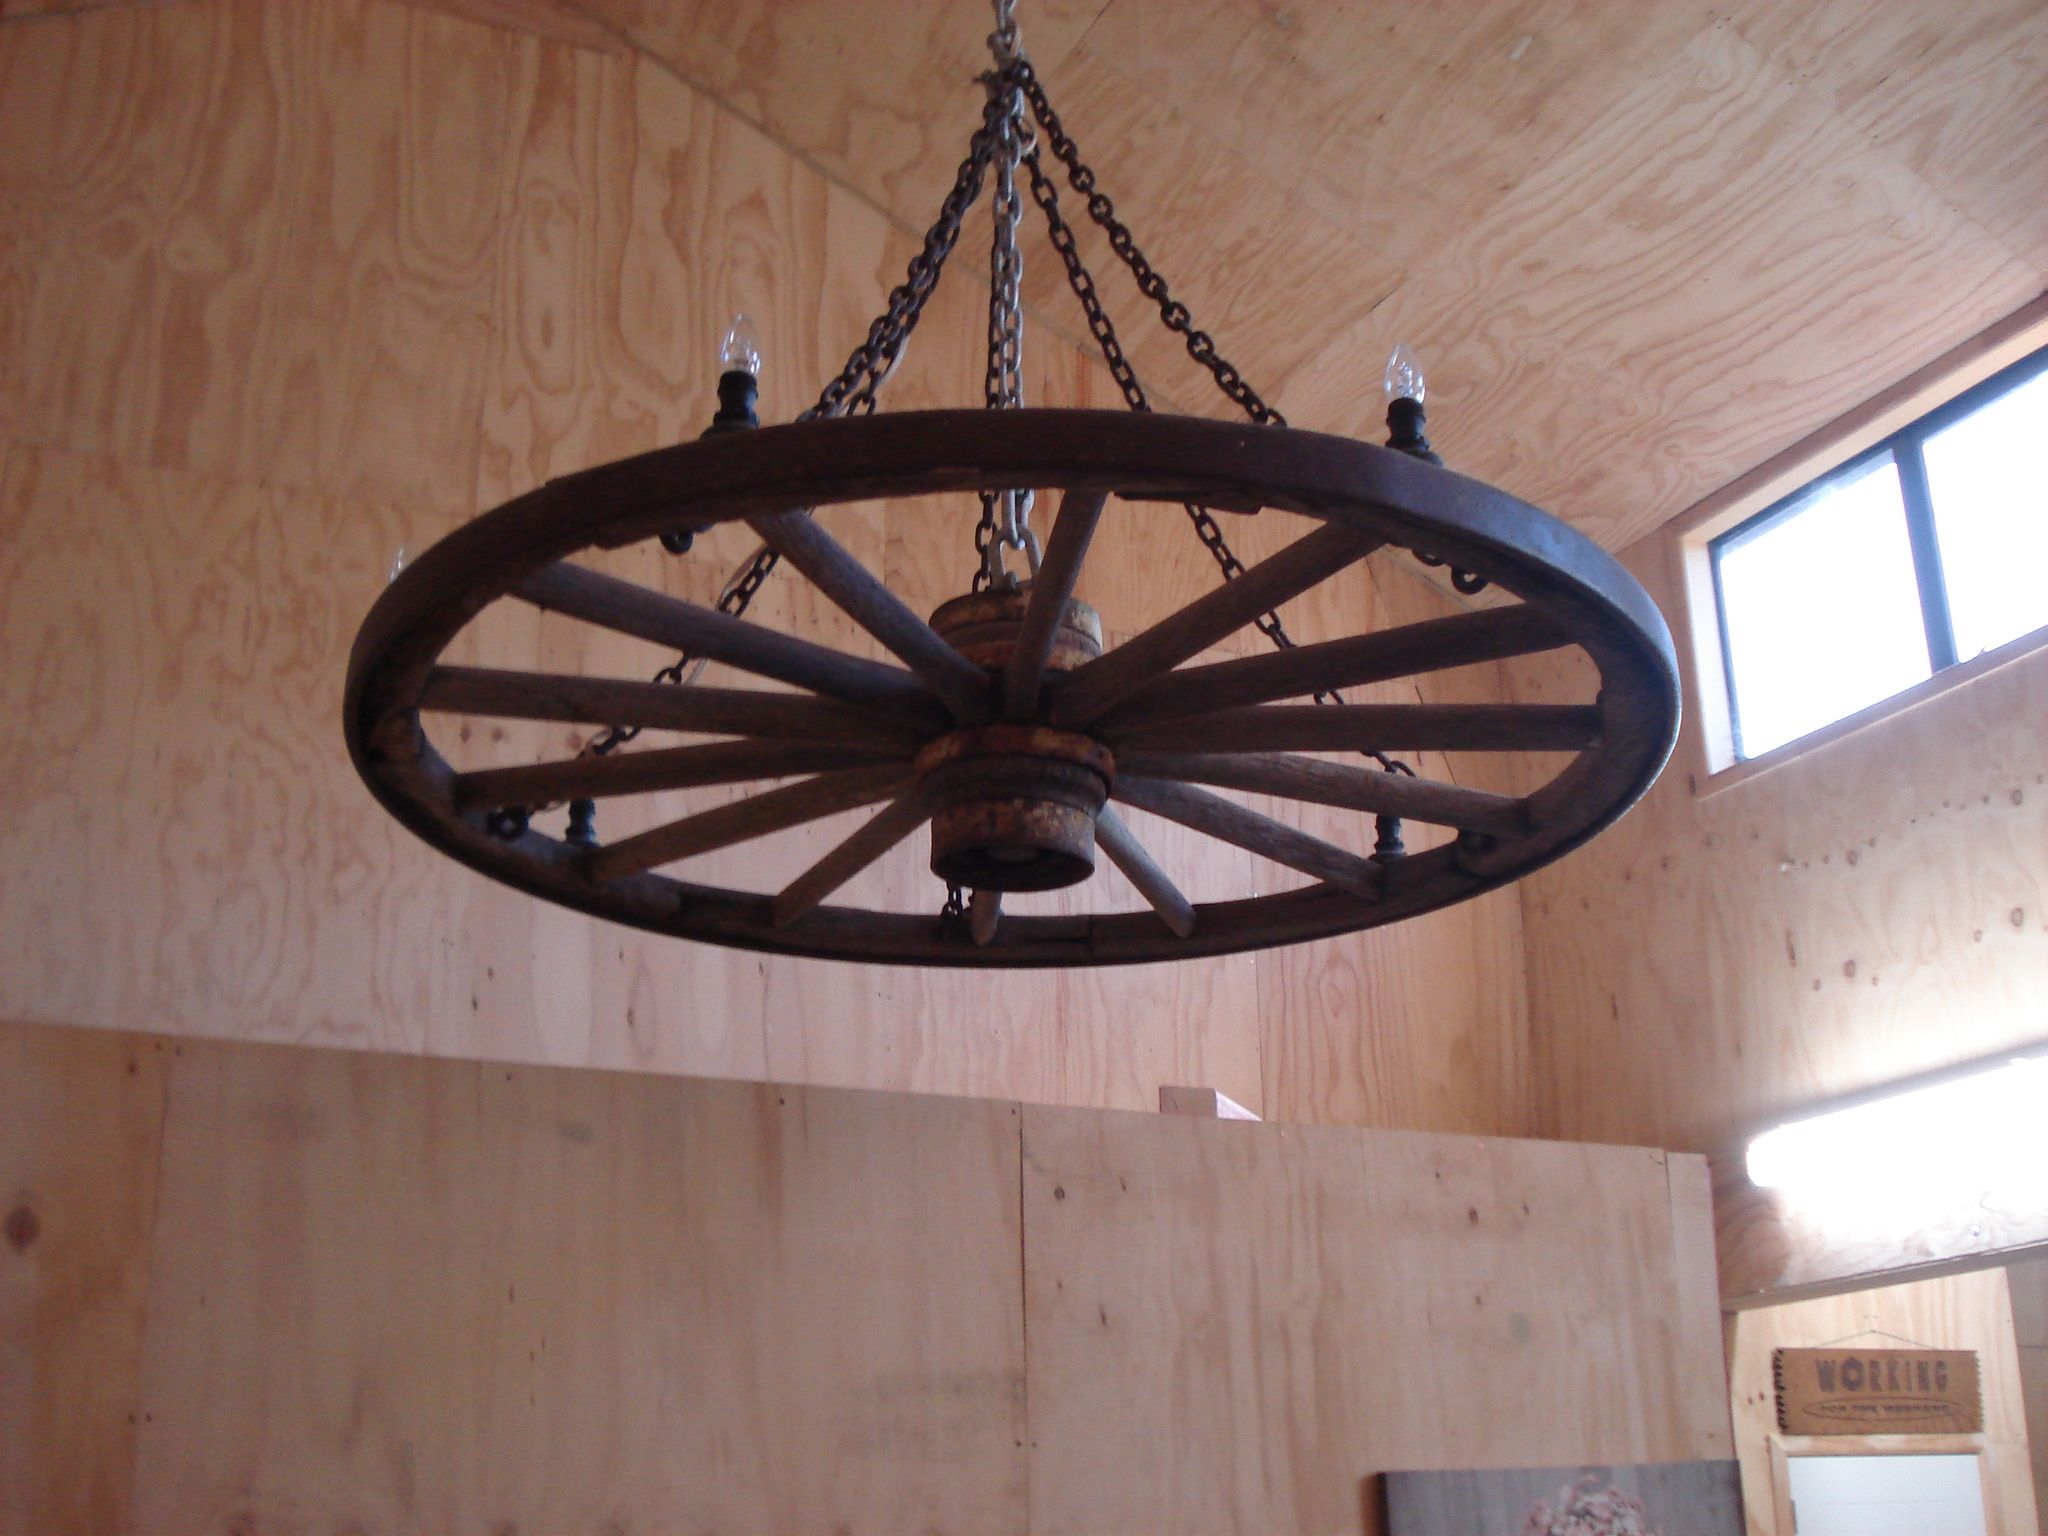 Wagon Wheel Light shines brightly with the plywood room lining